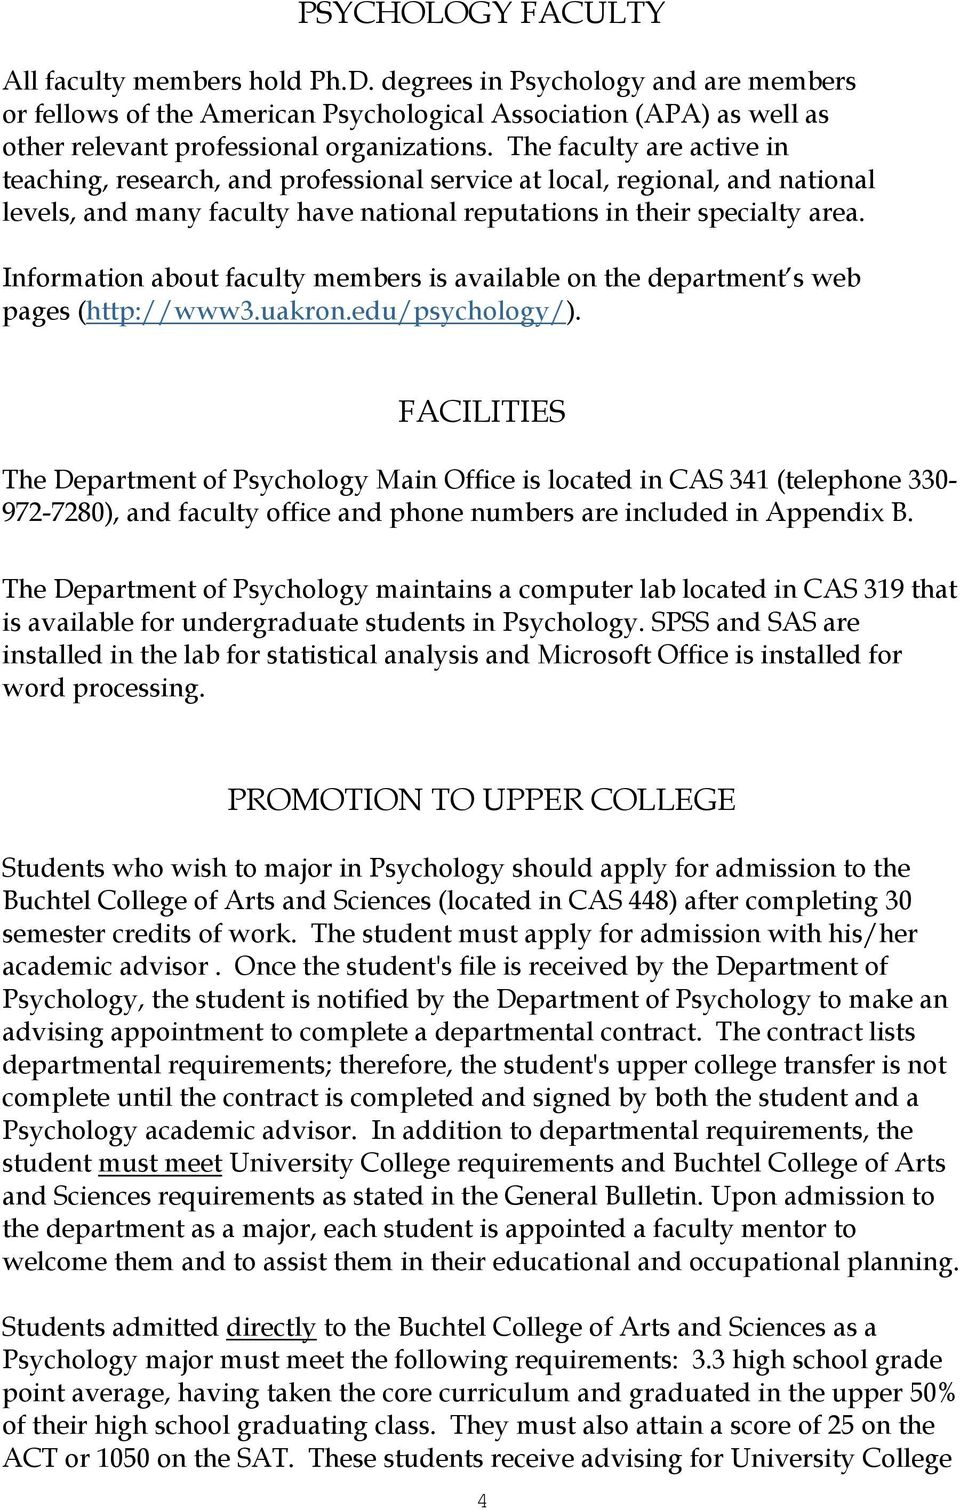 Information about faculty members is available on the department s web pages (http://www3.uakron.edu/psychology/).